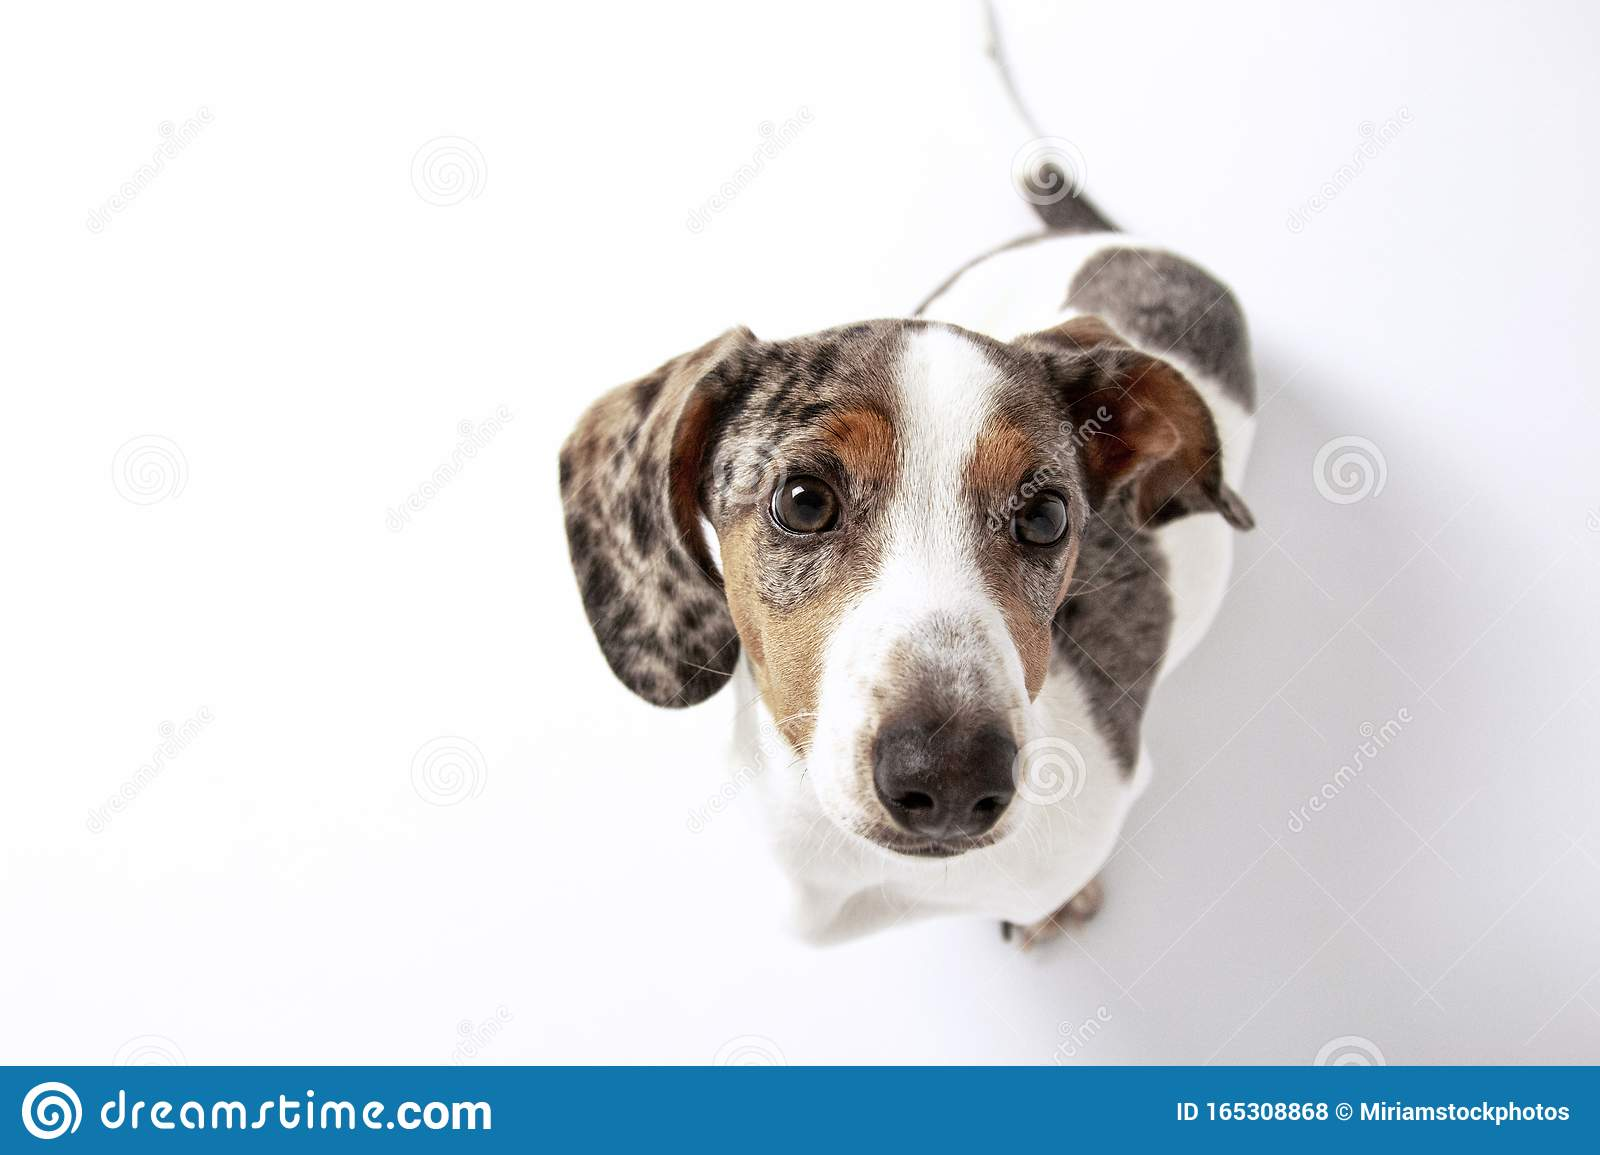 Cute Dachshund Puppy Dog With White And Spotted Fur Looking At The Camera On Plain White Background Stock Photo Image Of Smooth Spotted 165308868